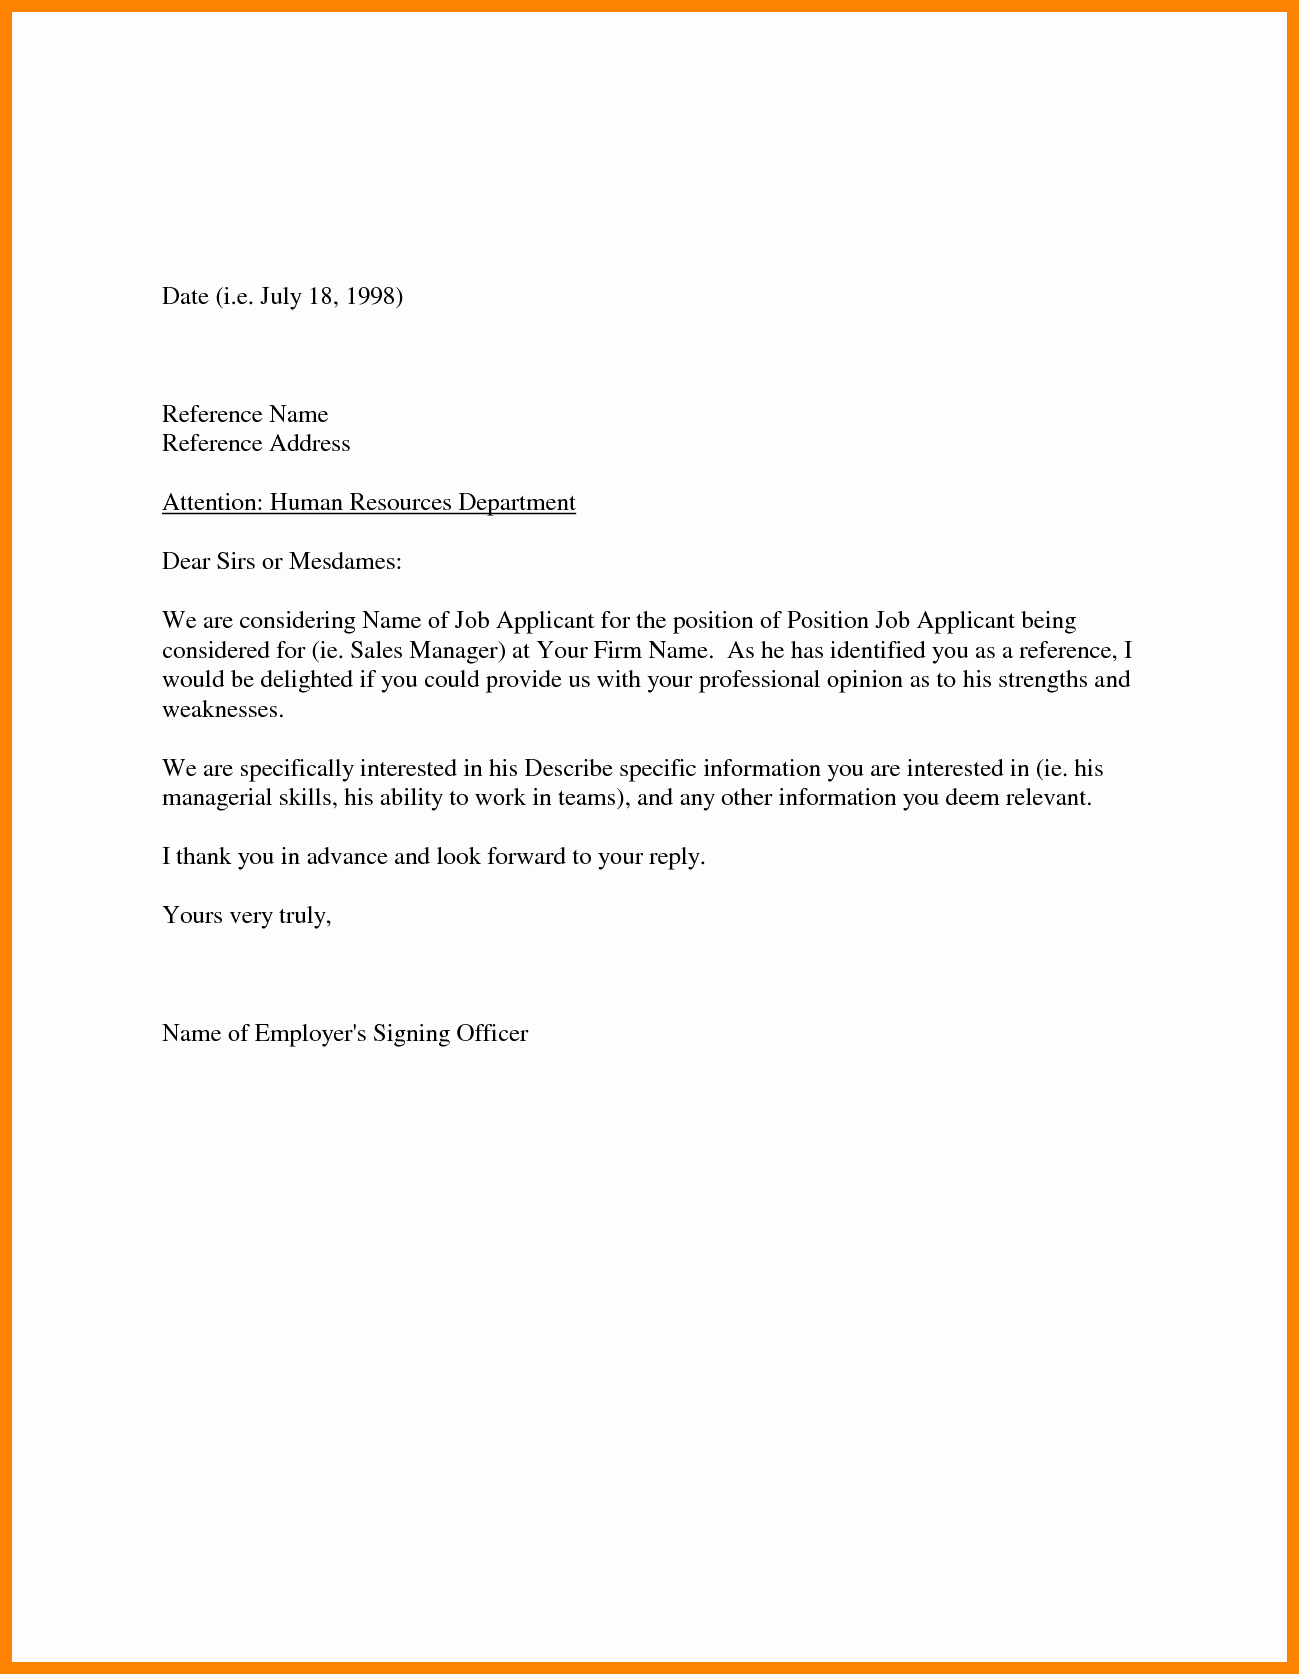 Samples Of Employee Reference Letters New Referral Letter Sample for Employment Cover Letter